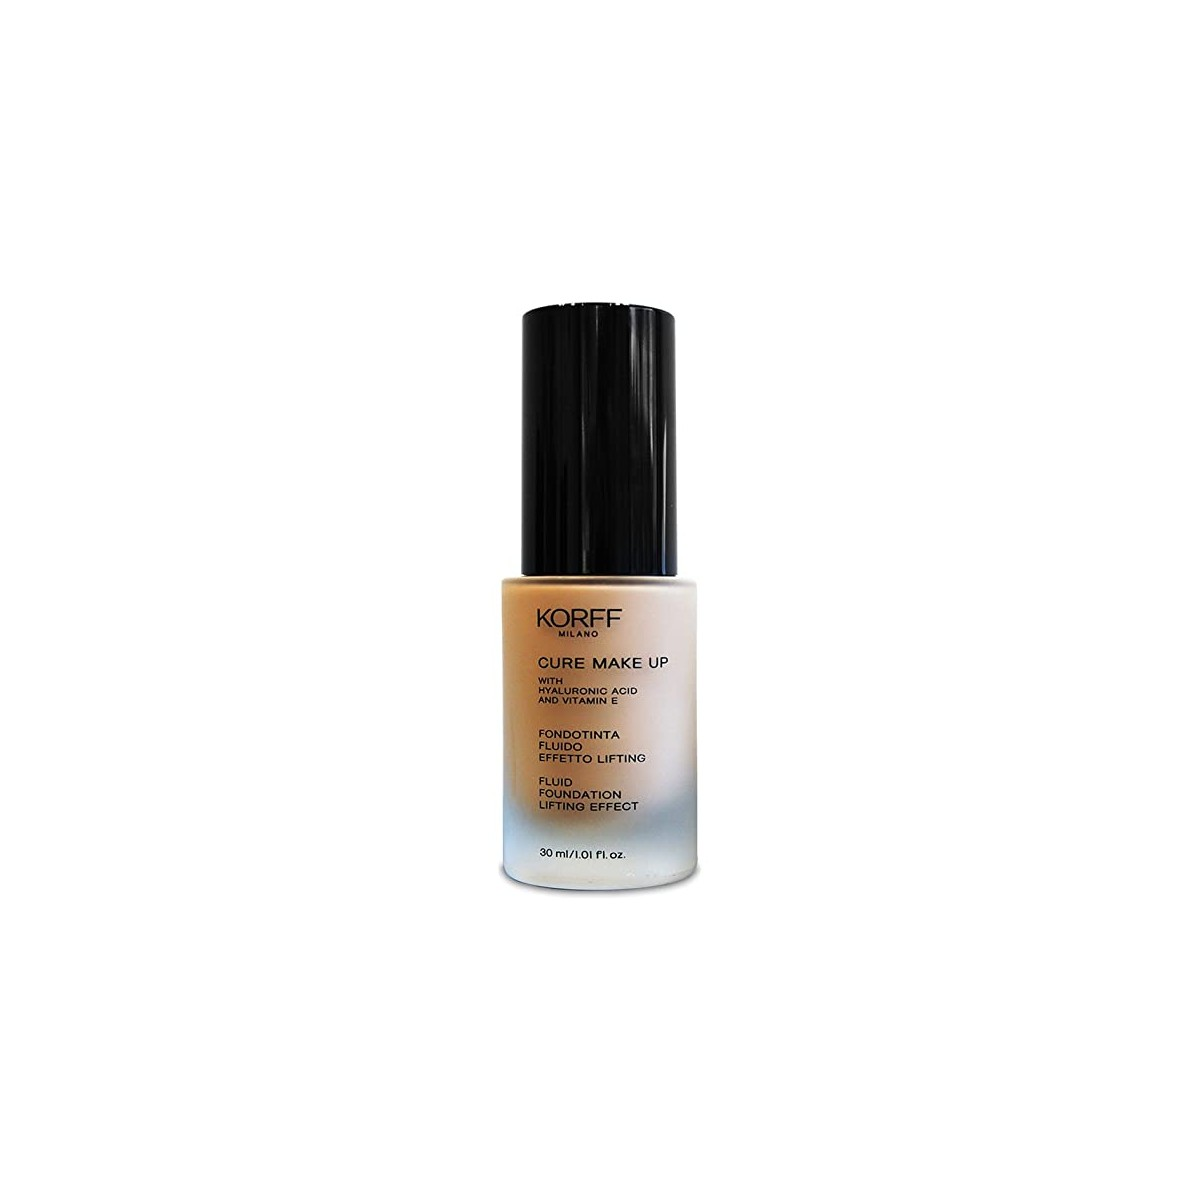 KORFF MAKE UP FONDOTINTA FLUIDO EFFETTO LIFTING 05 30 ML PROMO